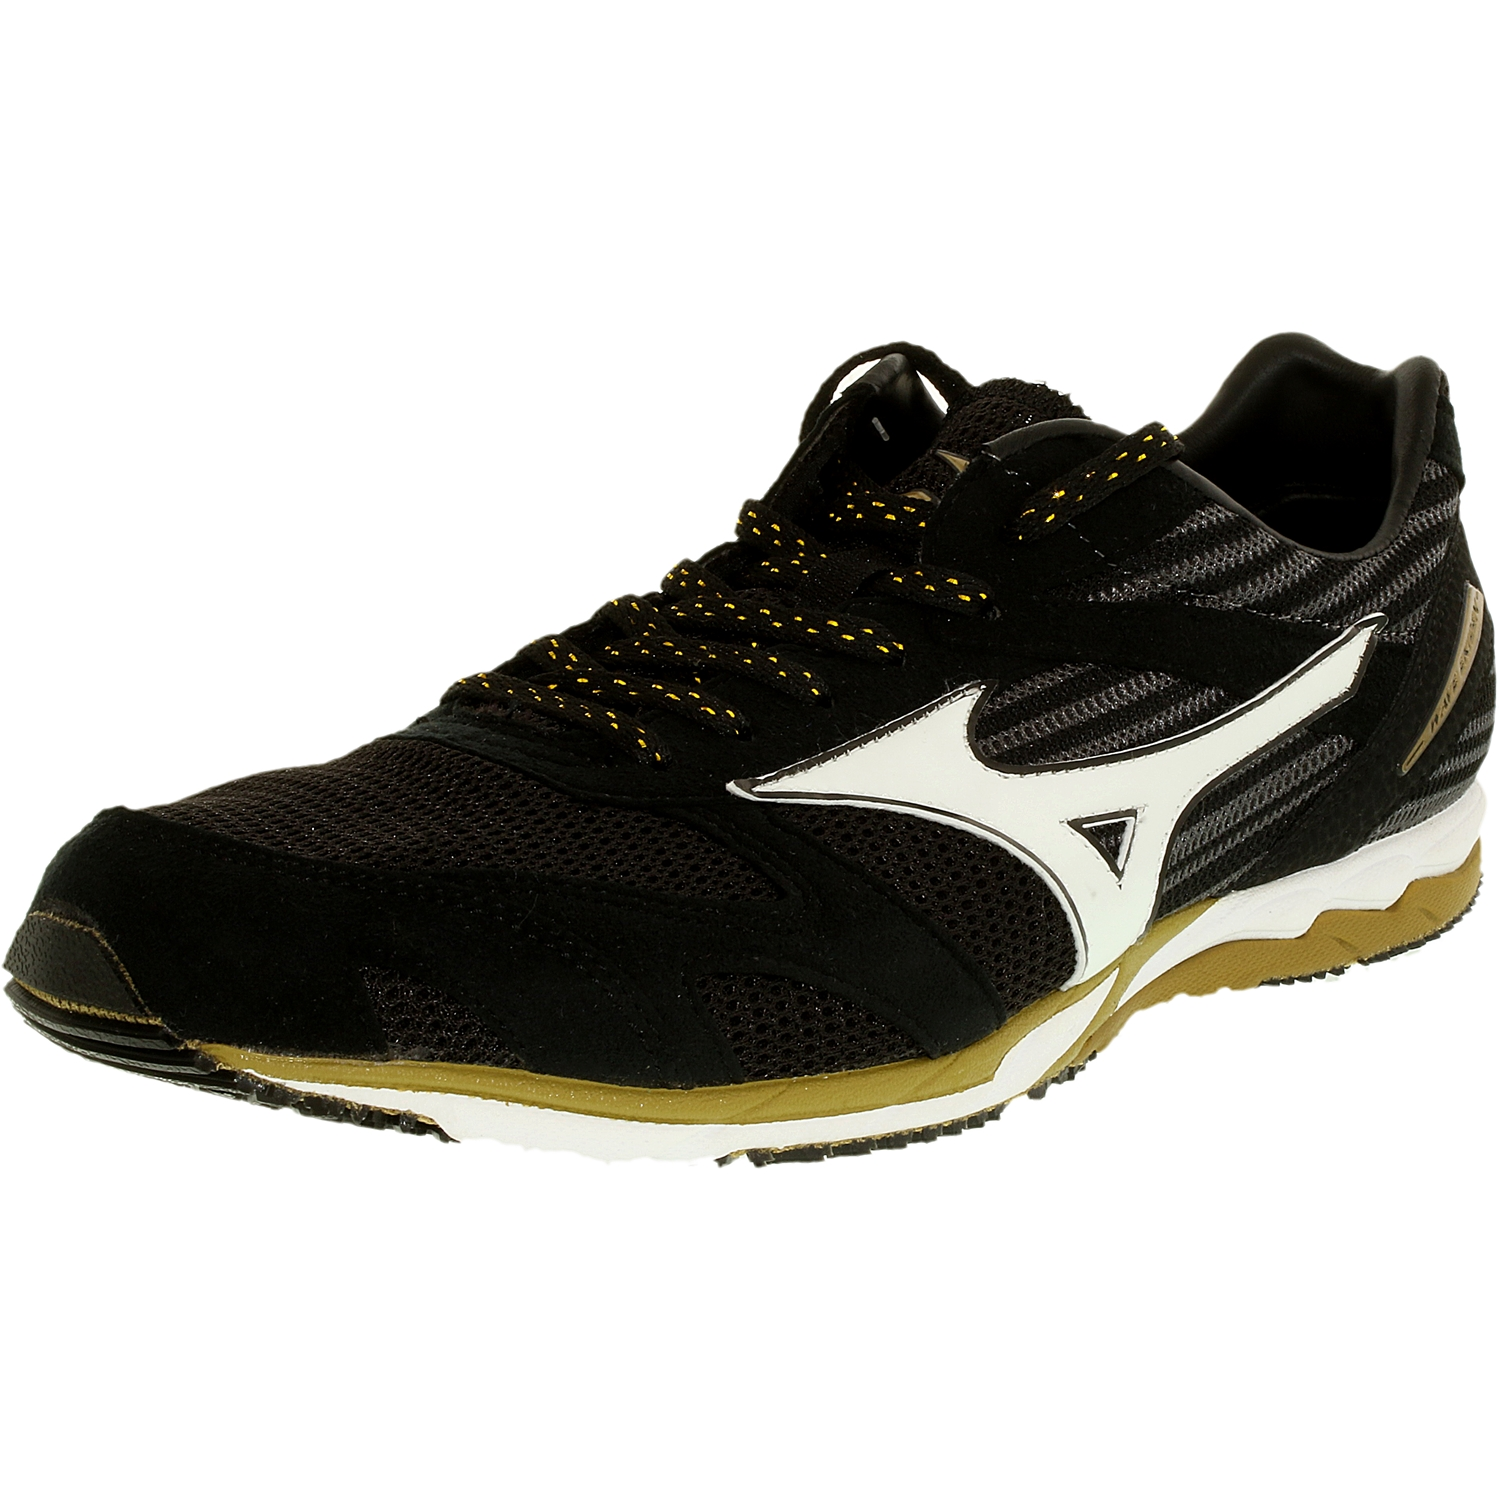 mizuno mens running shoes size 9 youth gold foot clip walmart